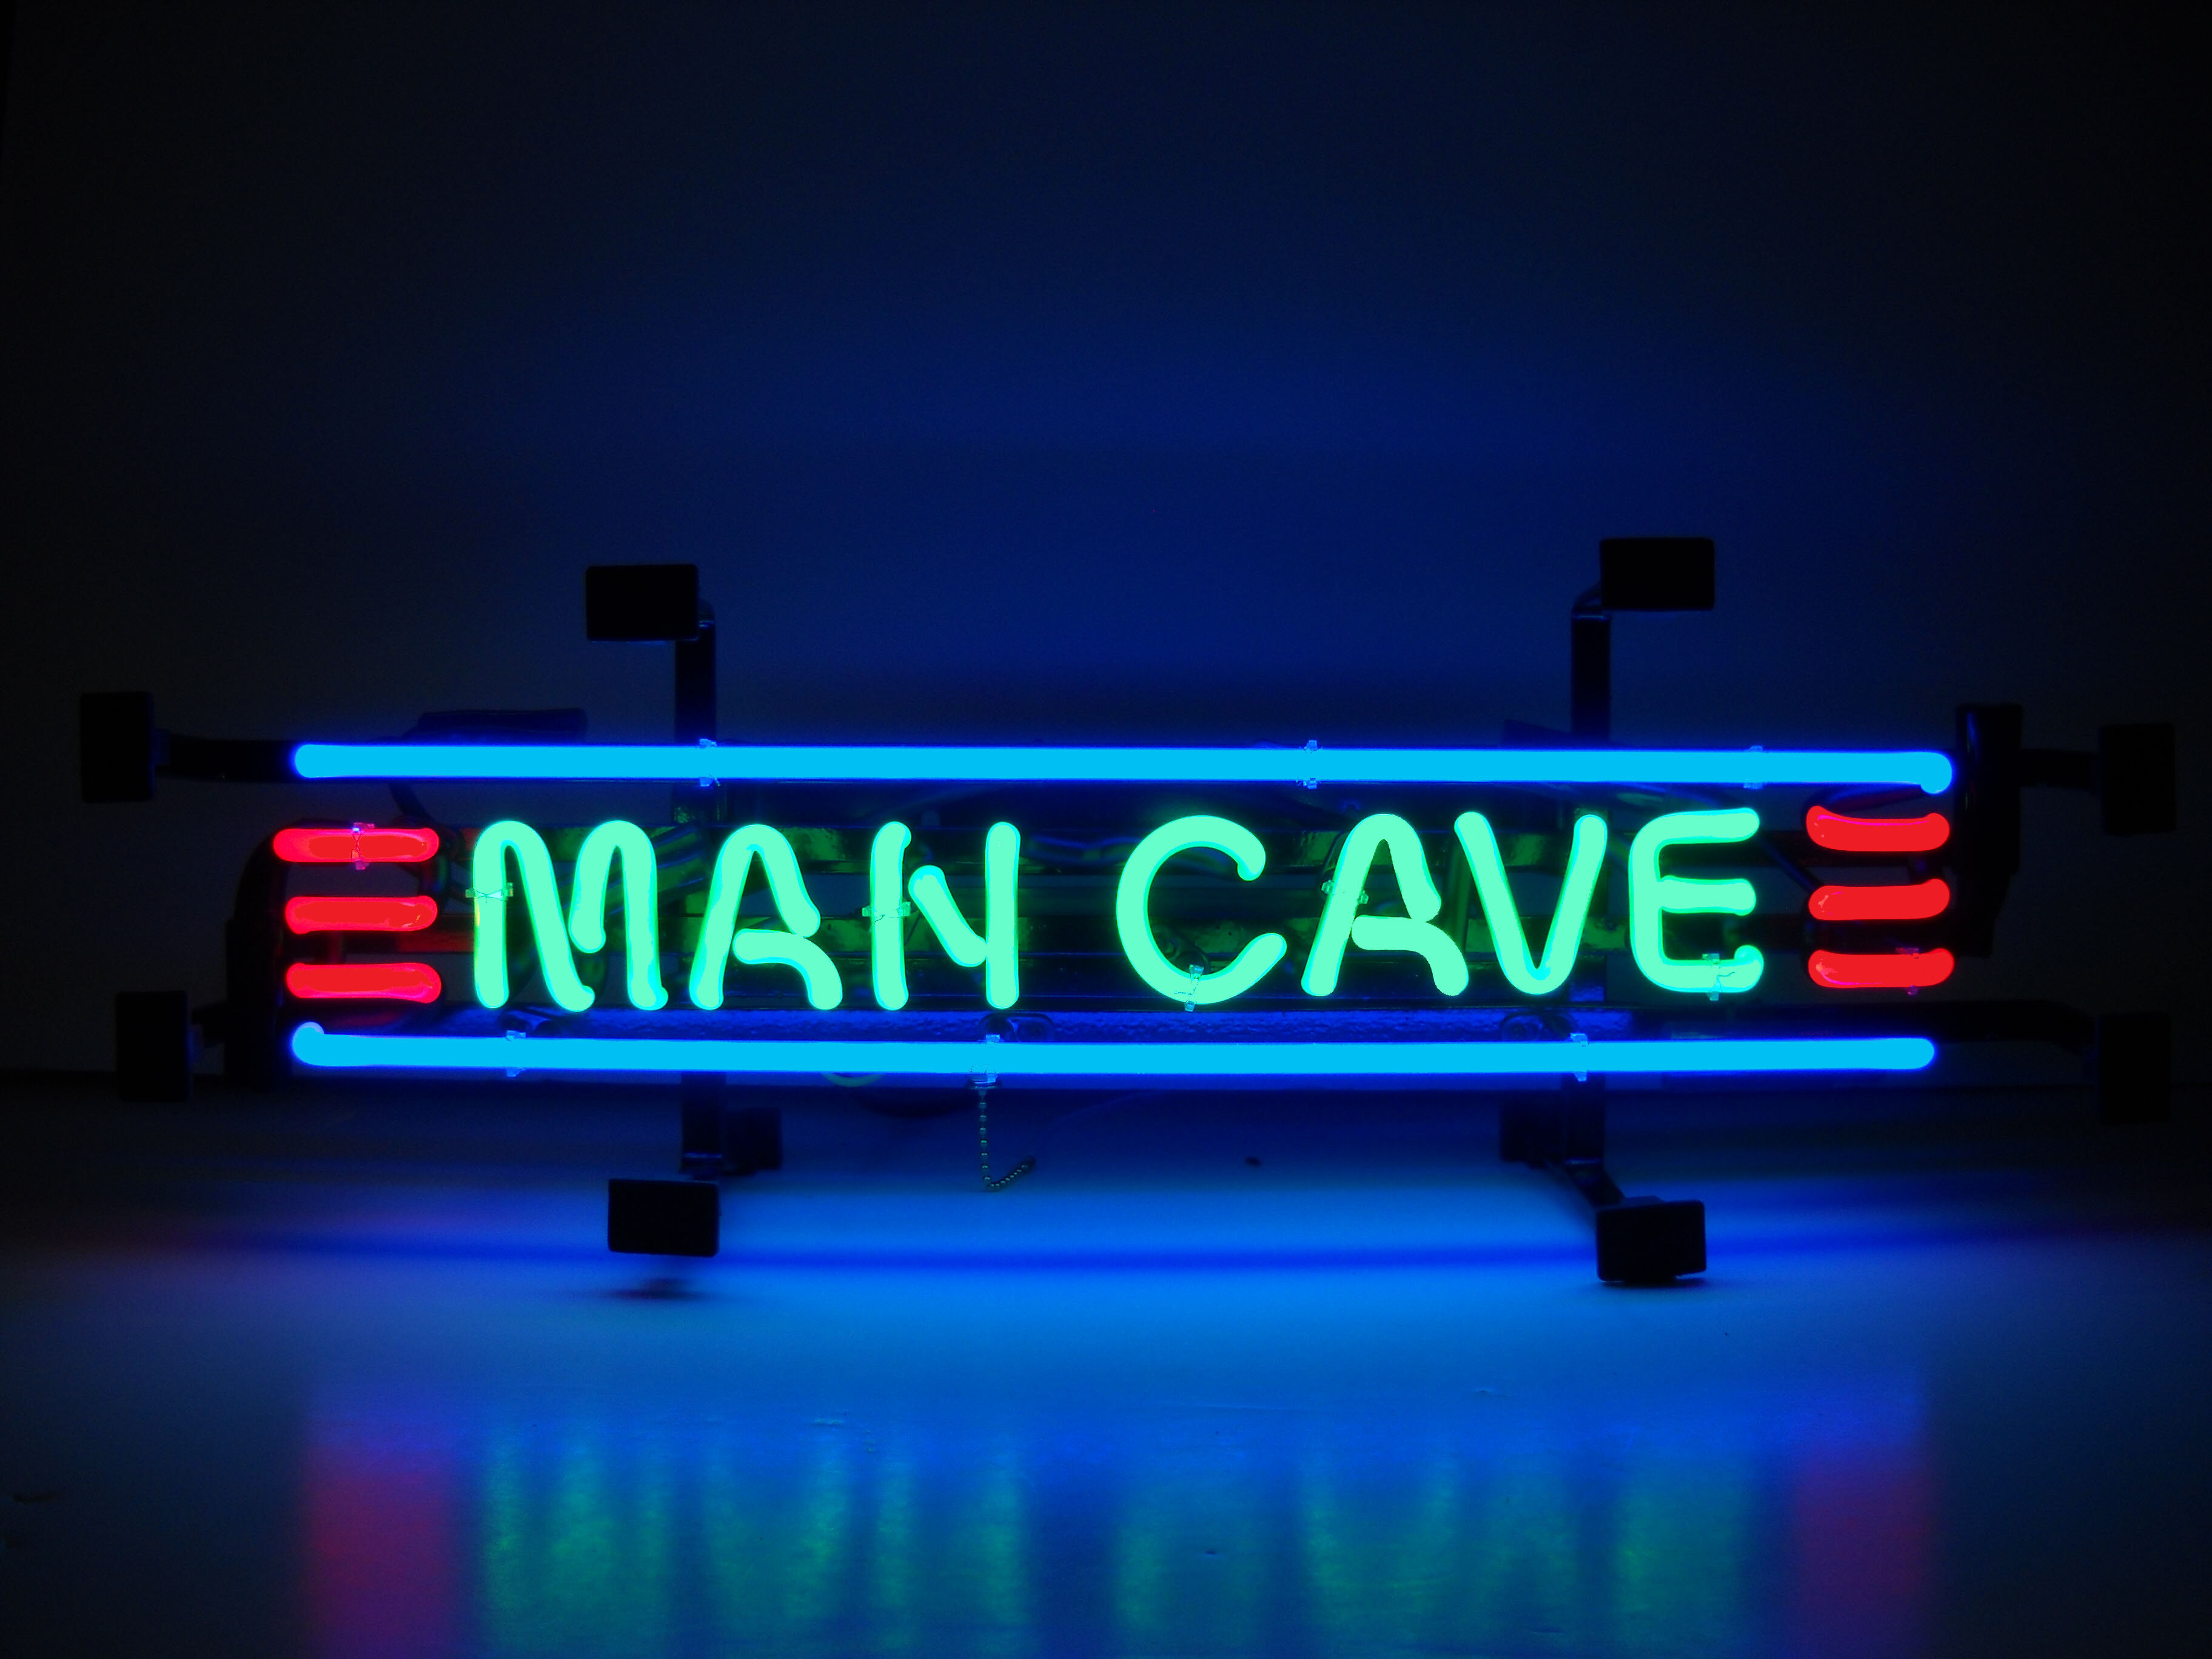 man cave lighting. Man Cave Lighting. Lighting A -